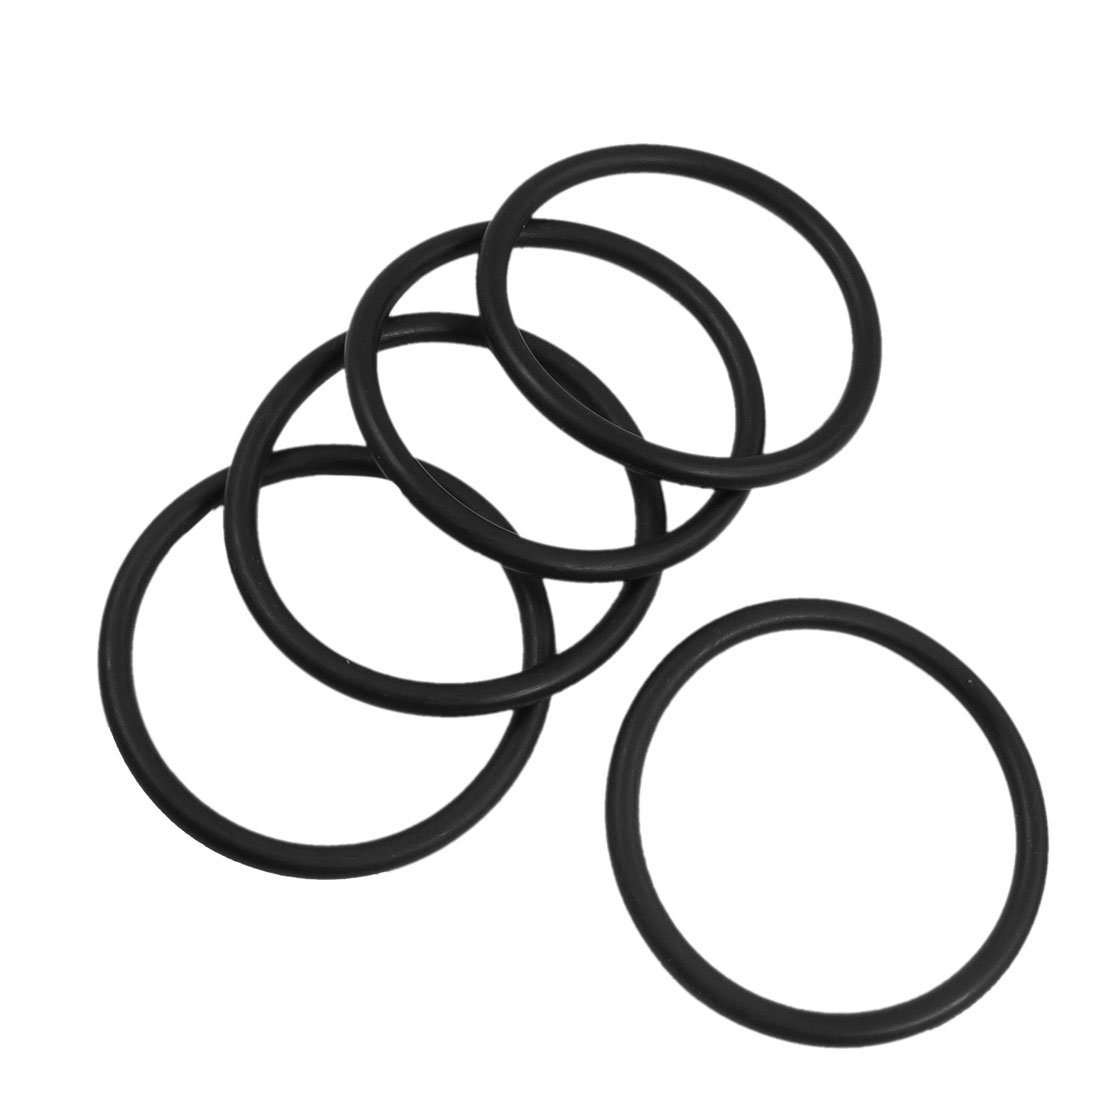 5 Pcs 65m x 5mm Rubber Sealing Oil Filter O Rings Gaskets Black